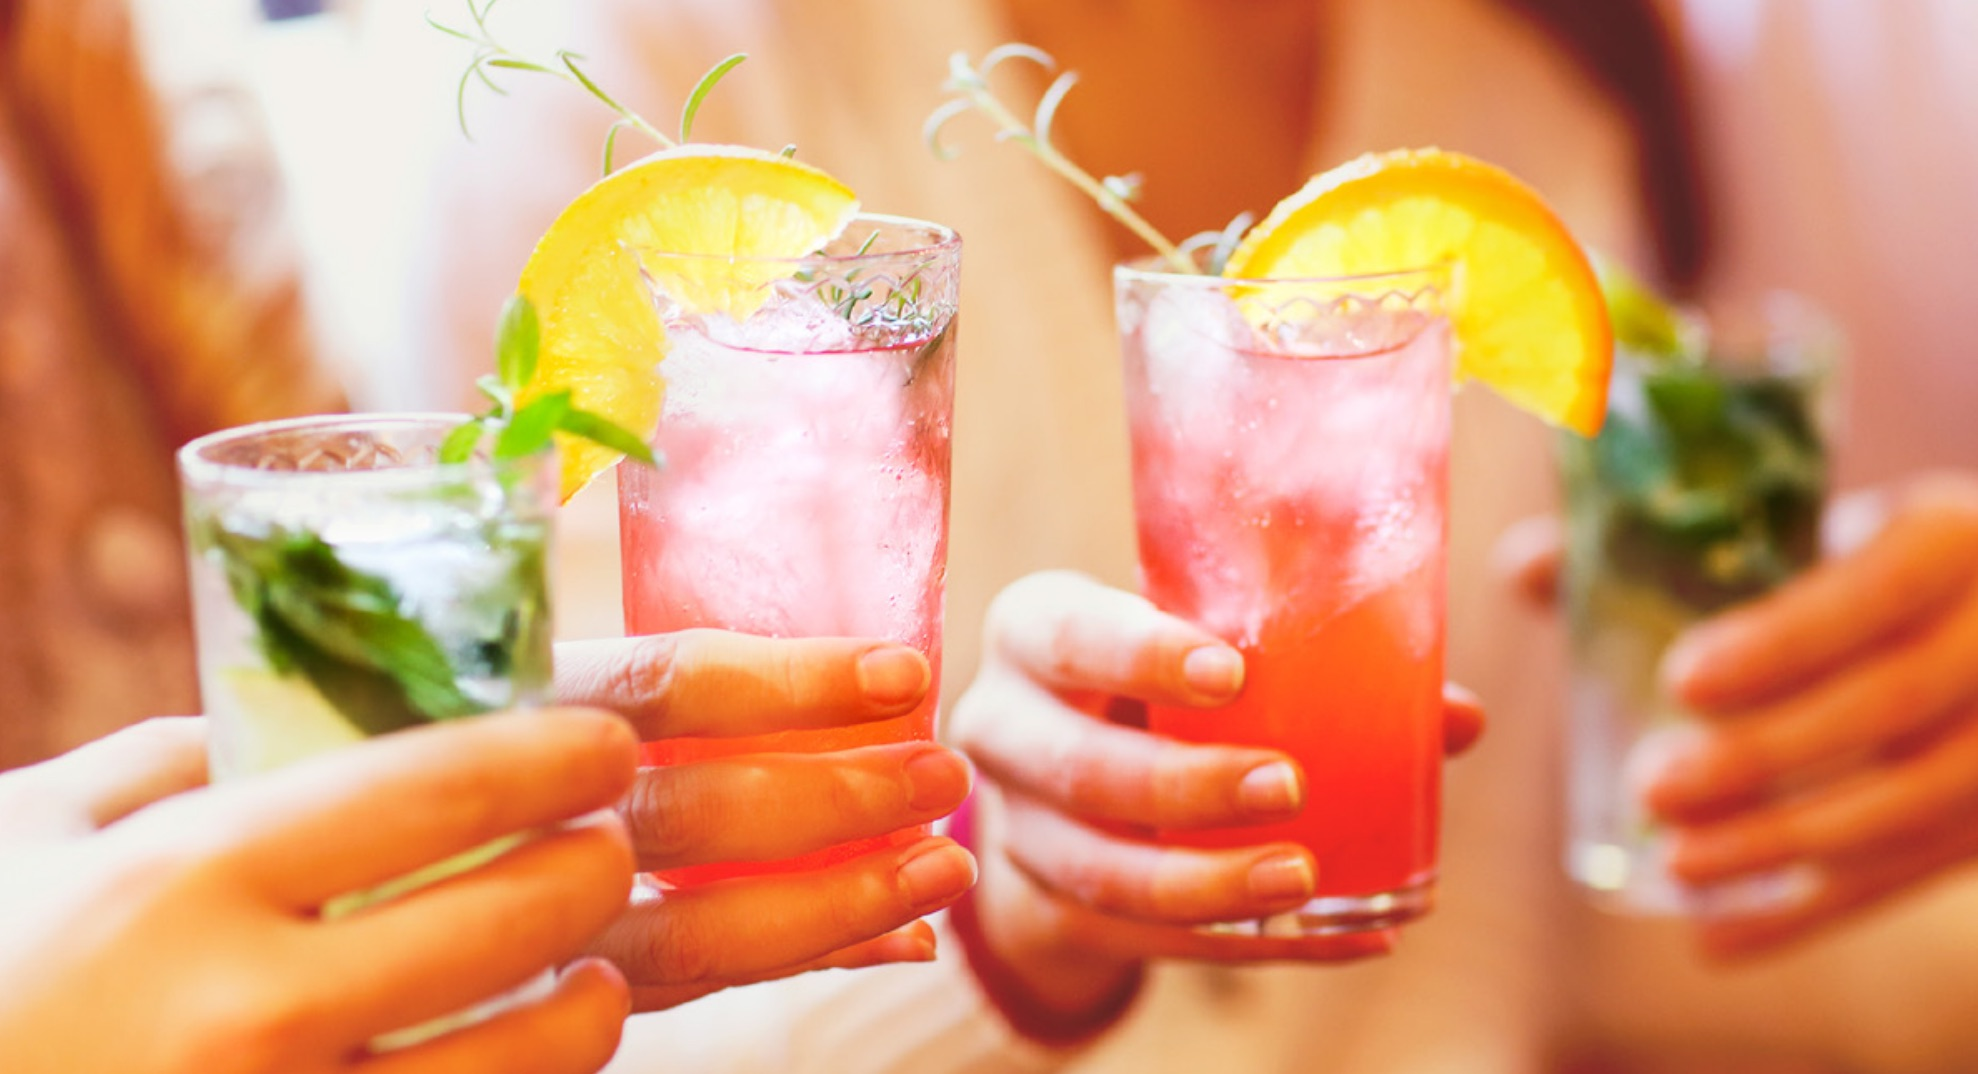 A toxic pink cocktail: social media and alcohol marketing